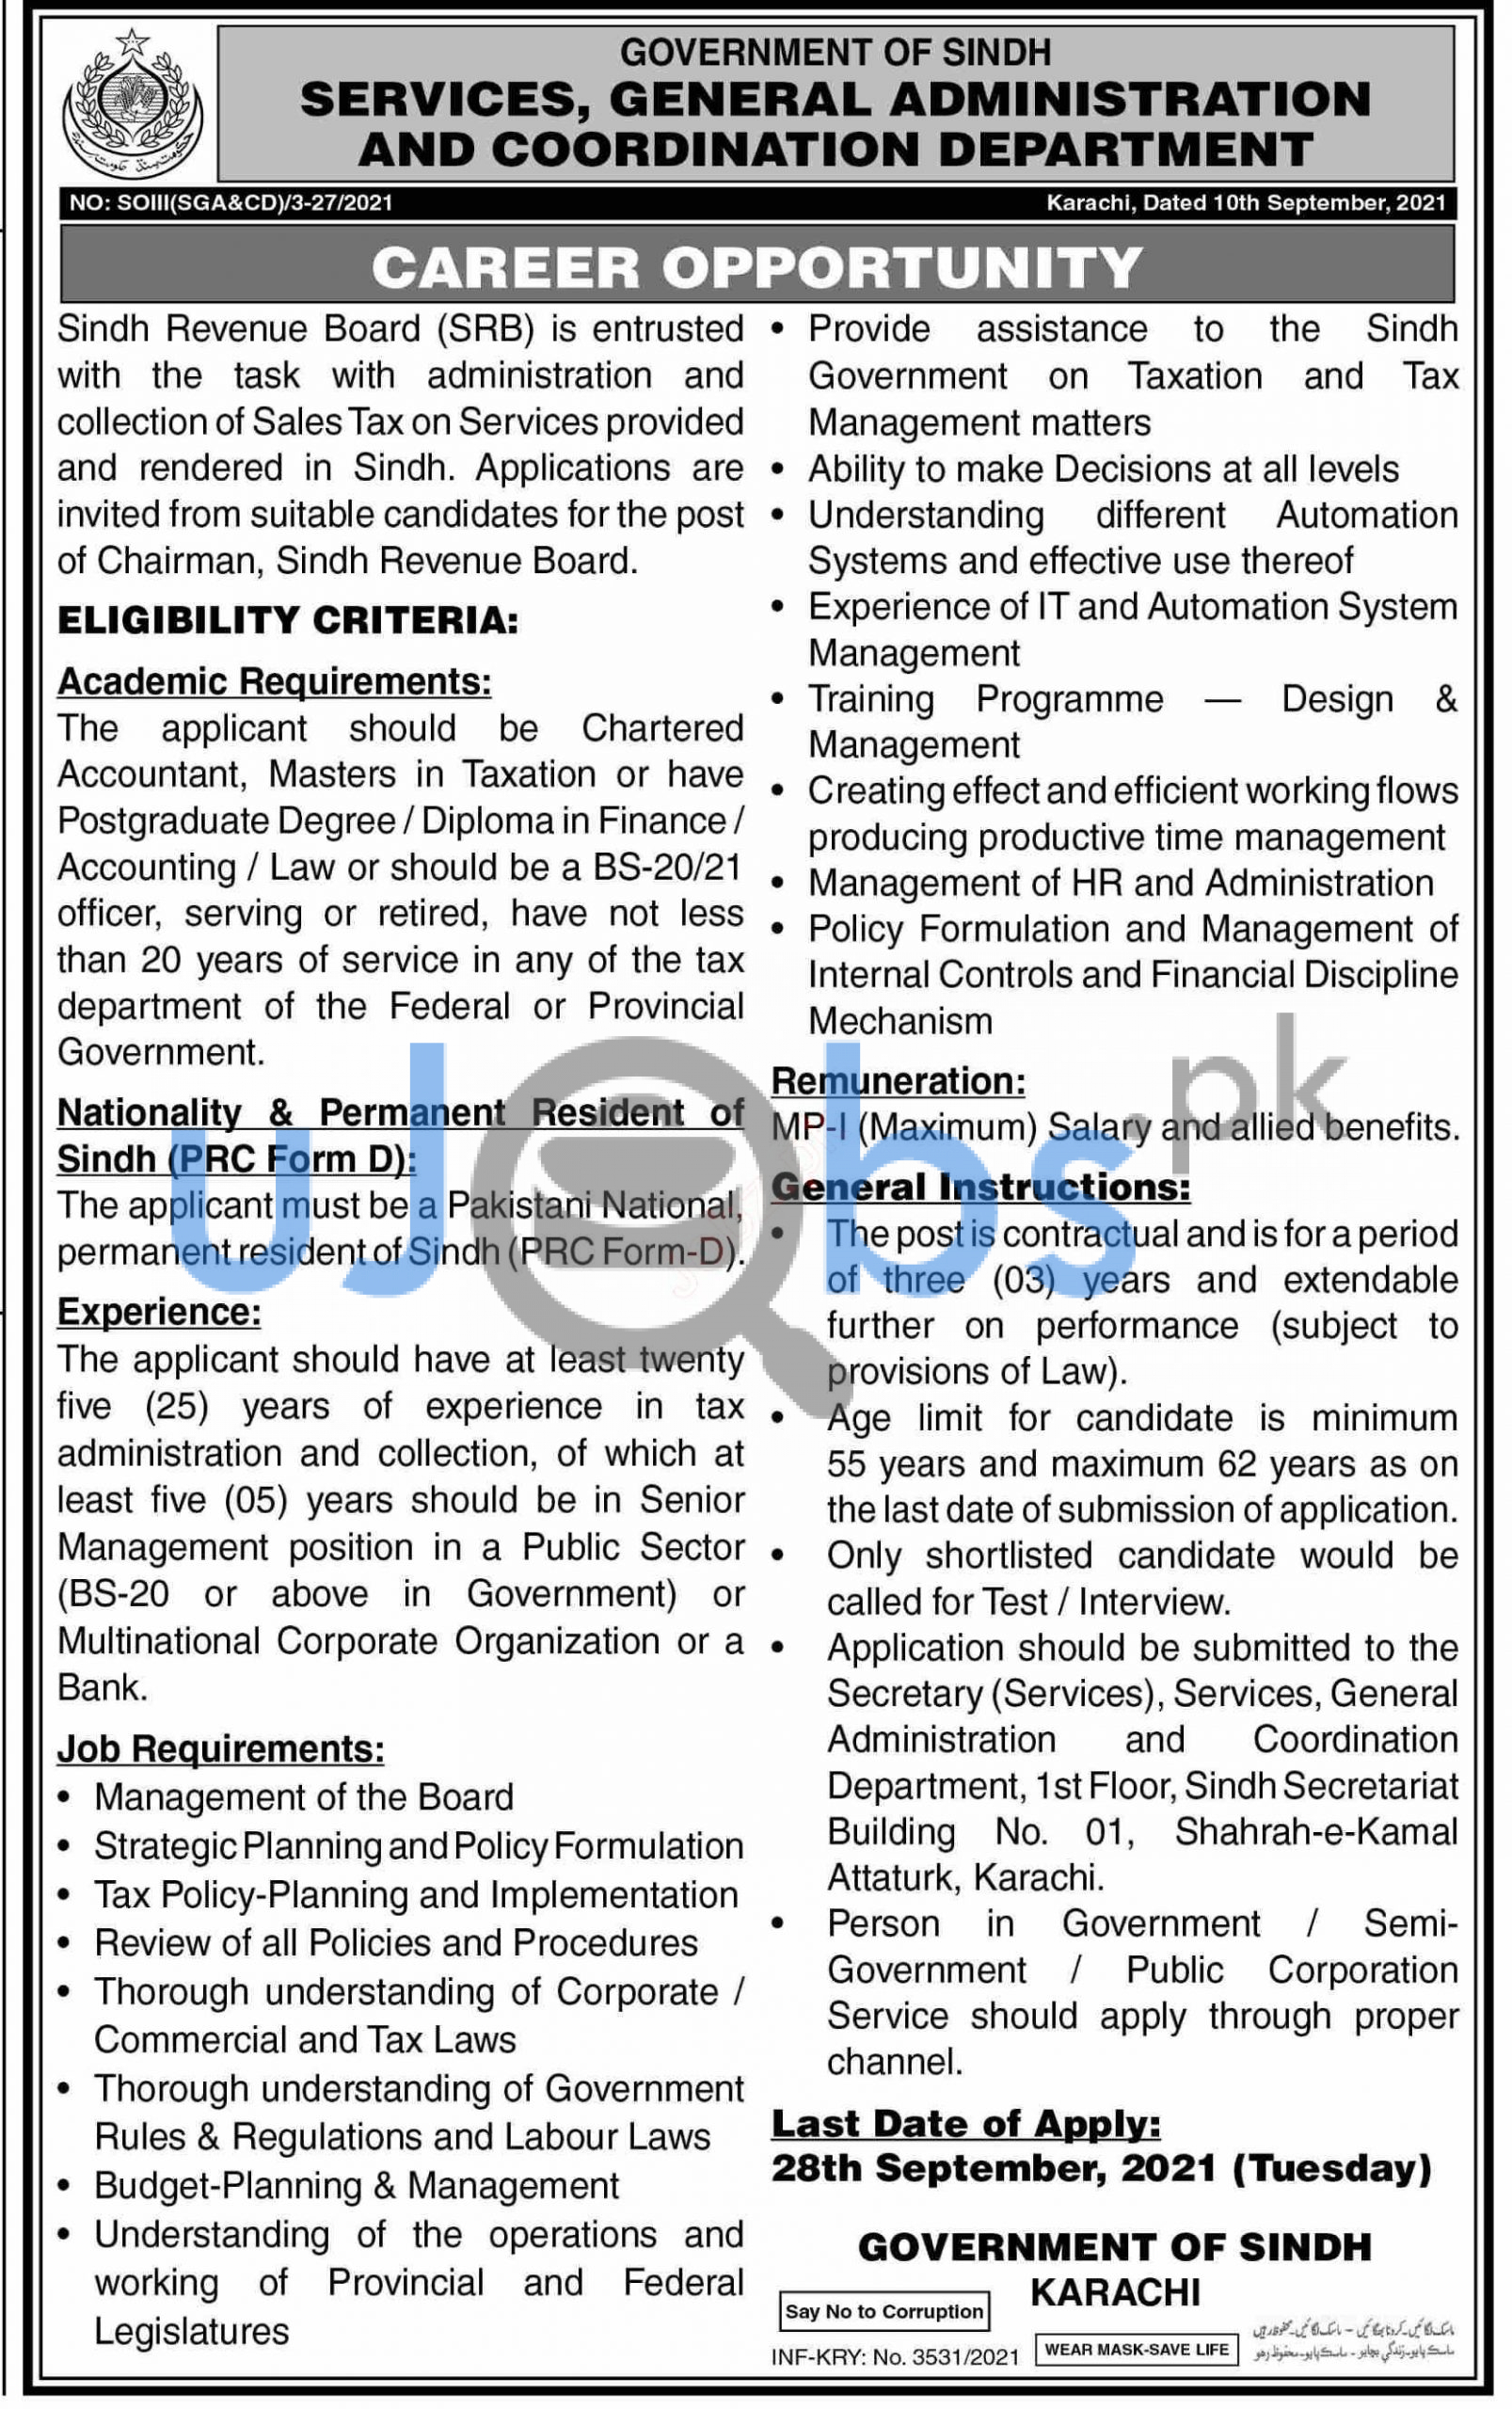 Latest Services and general administration department jobs 2021 Advertisements